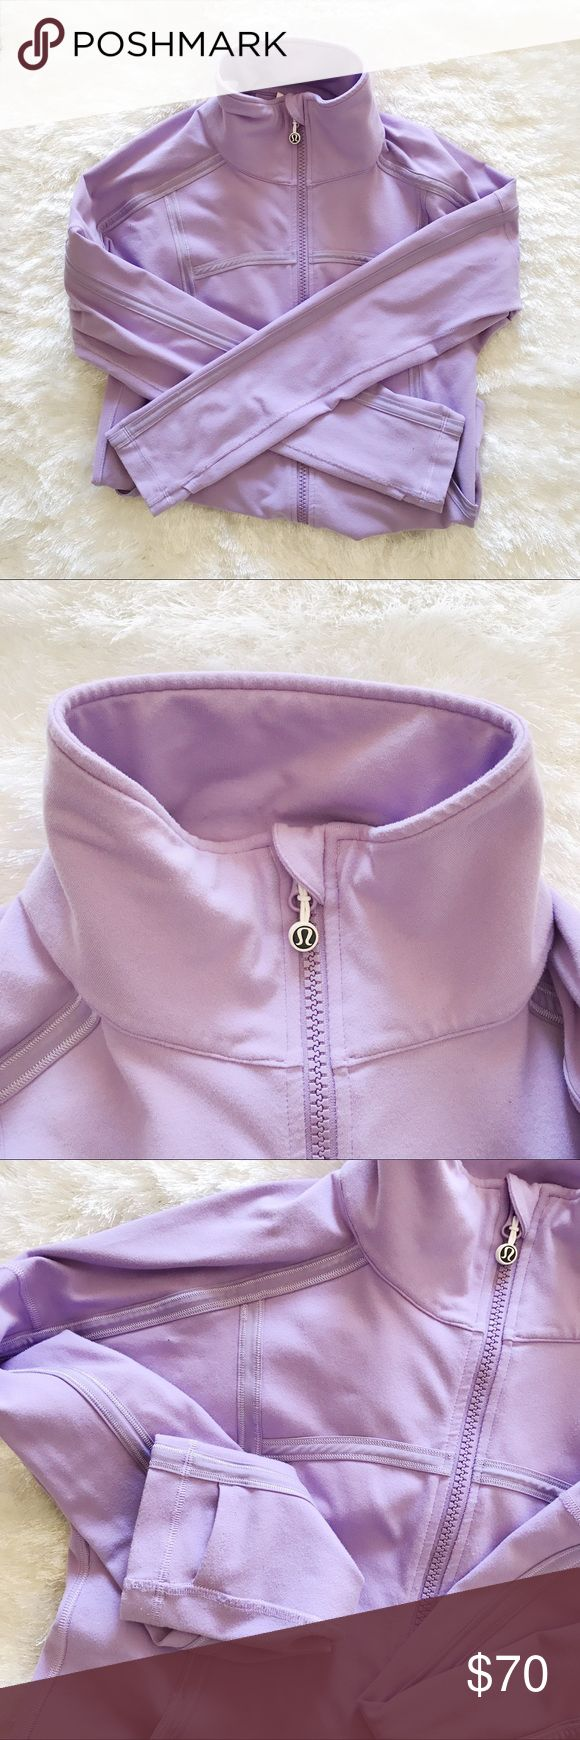 LULULEMON | Define Jacket LULULEMON | Define Jacket • Super cute, slim fit zip up jacket. Rare color, light purple. Fits close to your body with stretch. Front pockets, thumb holes & cuffins. Used condition & great quality! No flaws other than little pilling because of soft material.   🌿Offers are welcome! Please use offer button. Bundle & save 10%! lululemon athletica Jackets & Coats